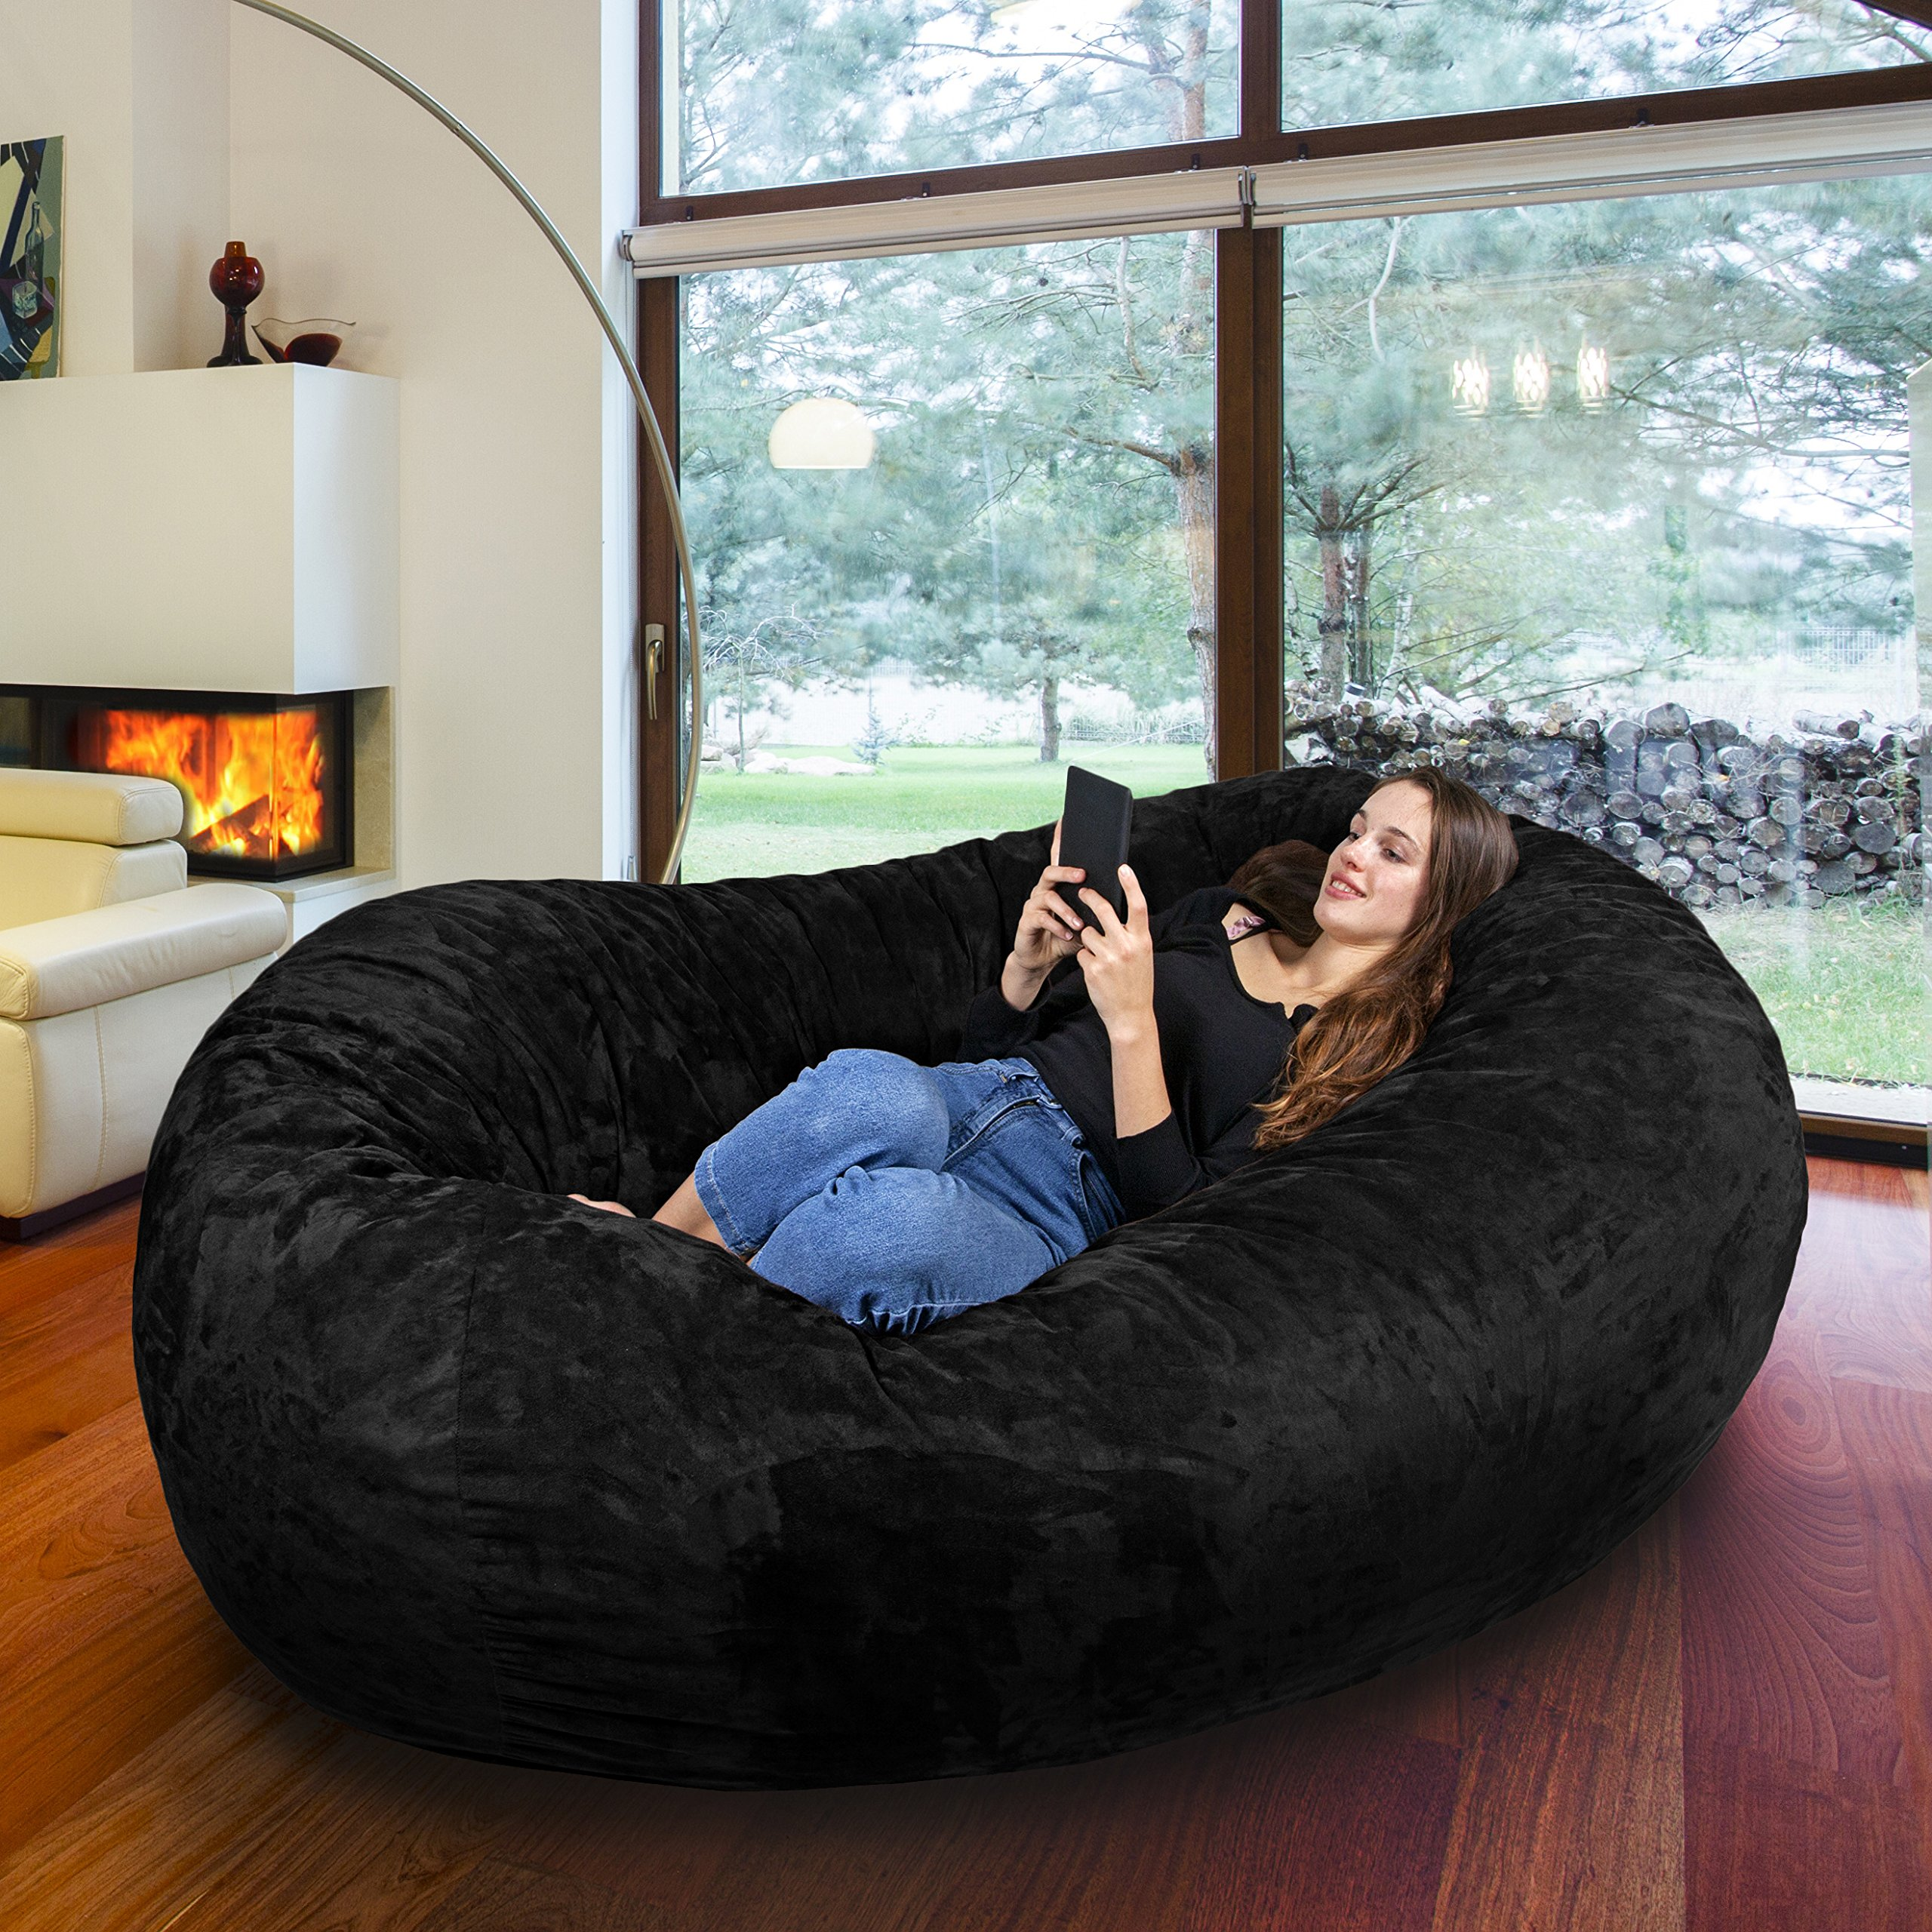 7FT Gigantic Bean Bag Chair in Limo Black with Memory Foam Filling Machine Washable Velour Cover- Comfortable Cozy Lounge Sack to Chill - Huge Bed, Large Sofa, Cozy Lounger - Kids, Adults & Teens by Panda Sleep